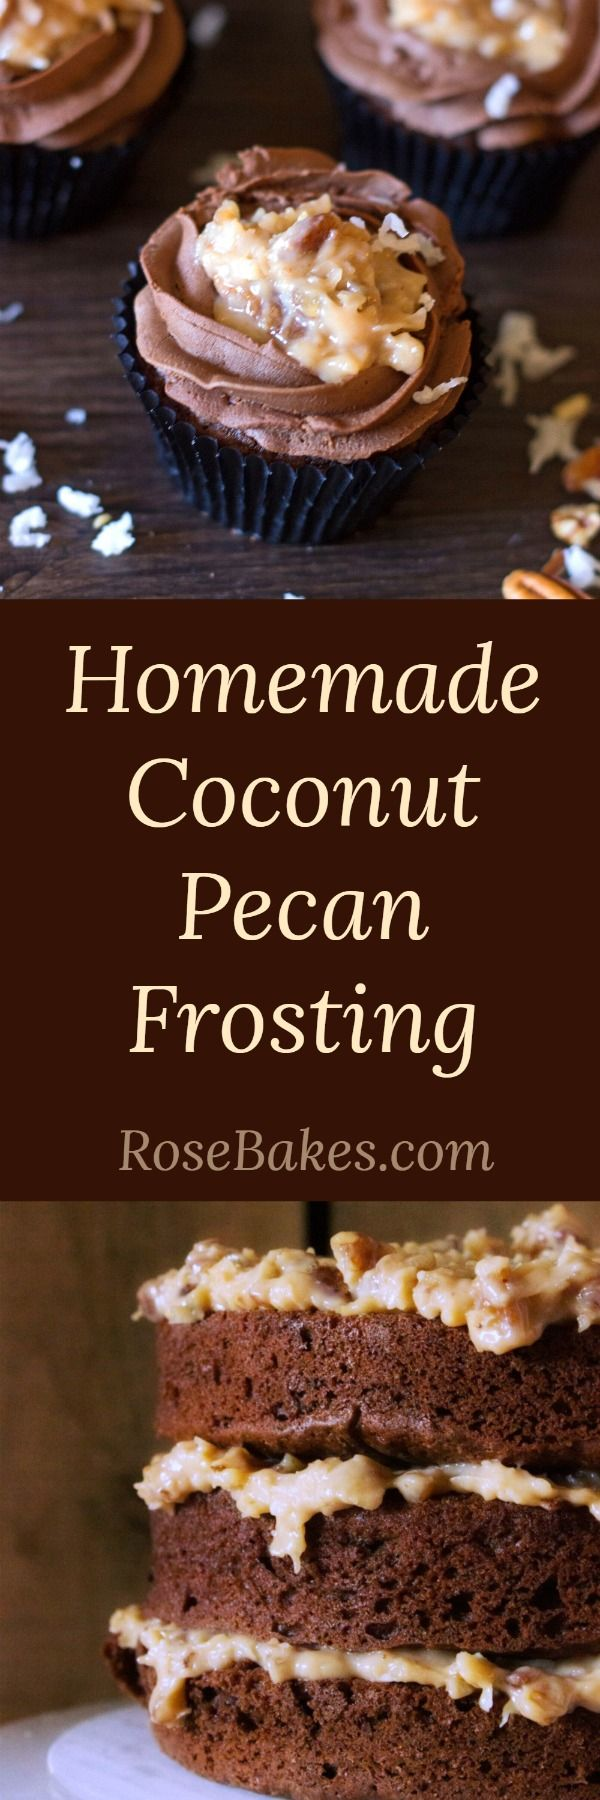 Homemade Coconut Pecan Frosting